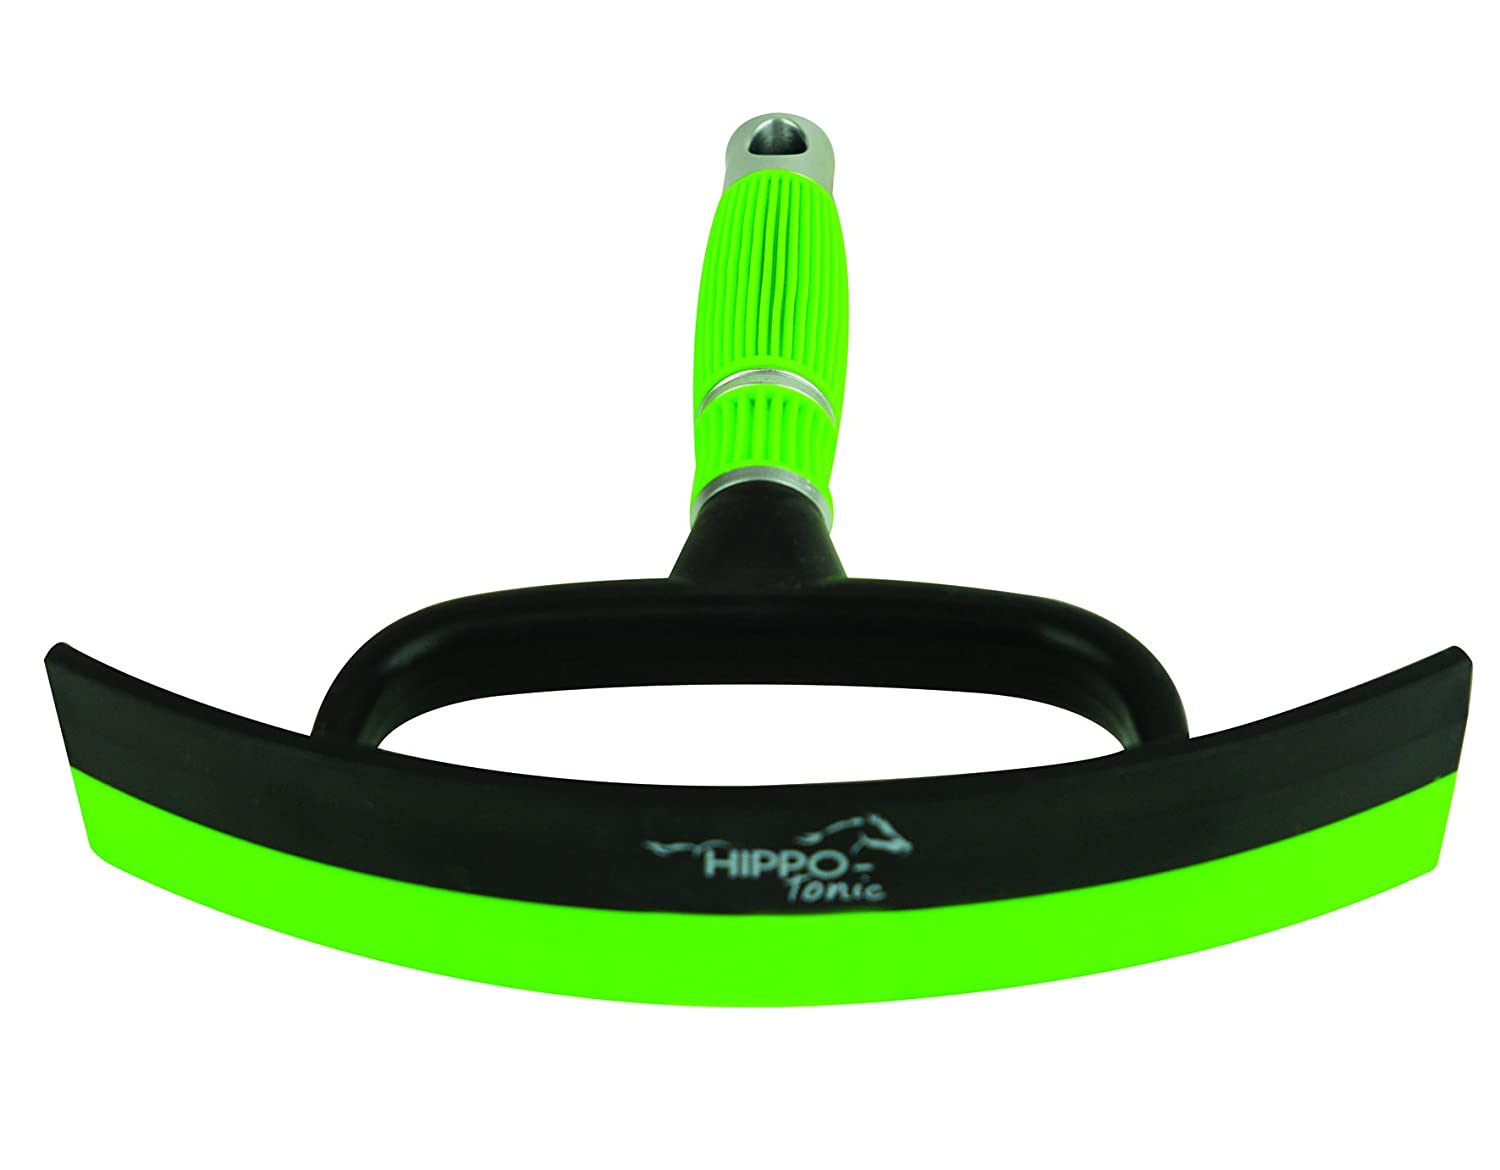 "Hippo Tonic Confort"" Sweat Scraper Neon Blue/Black 23 x 21 cm Hippo-Tonic 700179"